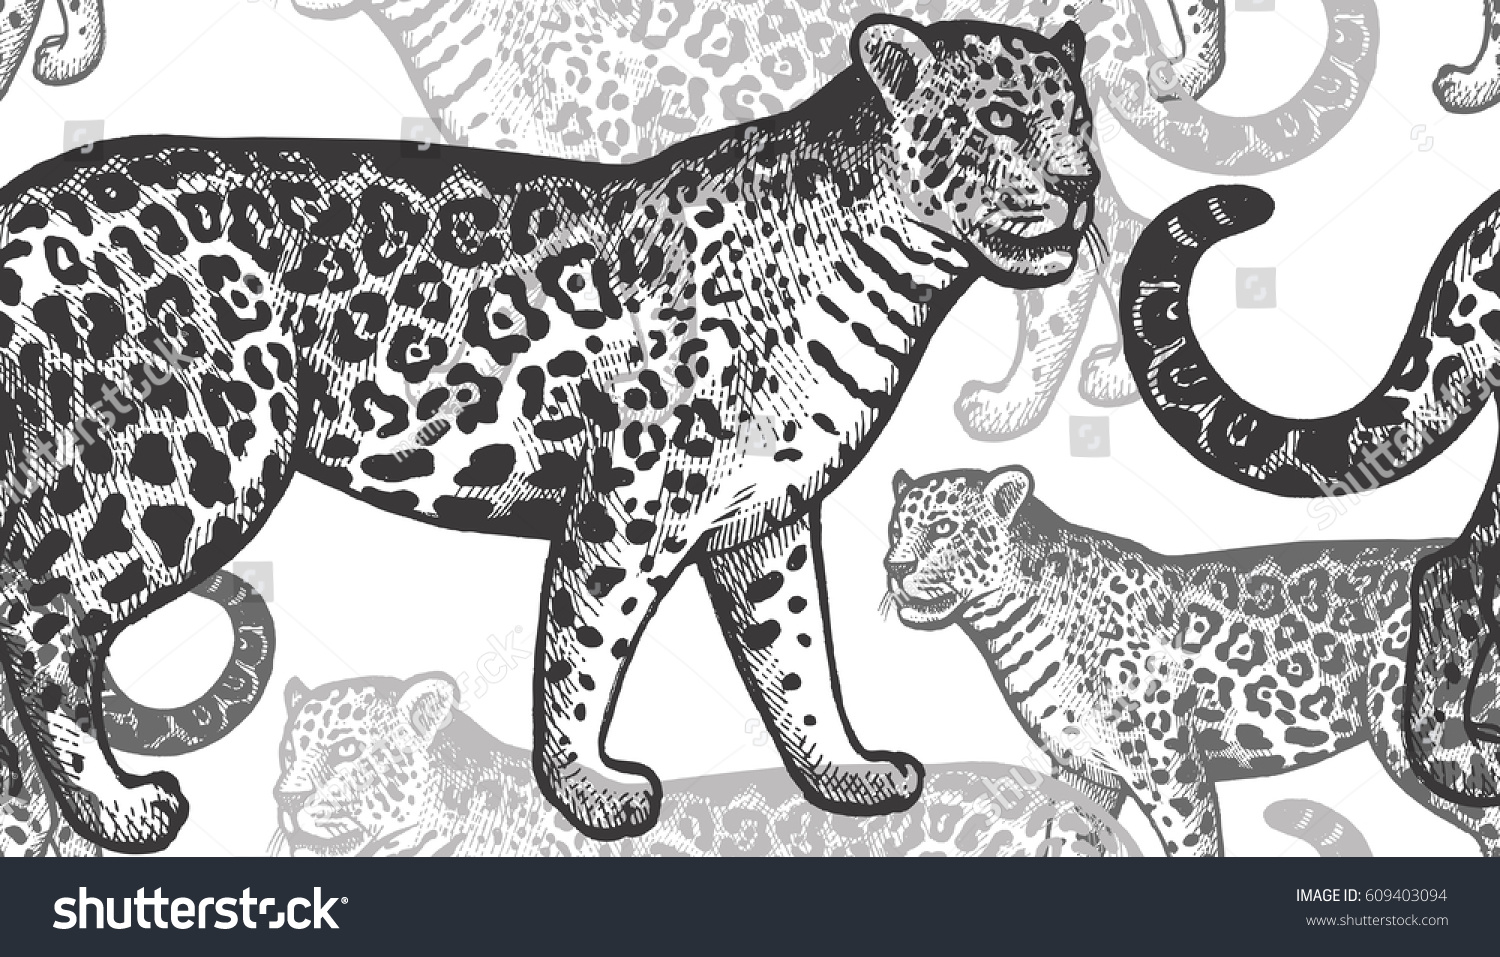 Black jaguars on a white background hand drawing of an animal seamless vector pattern